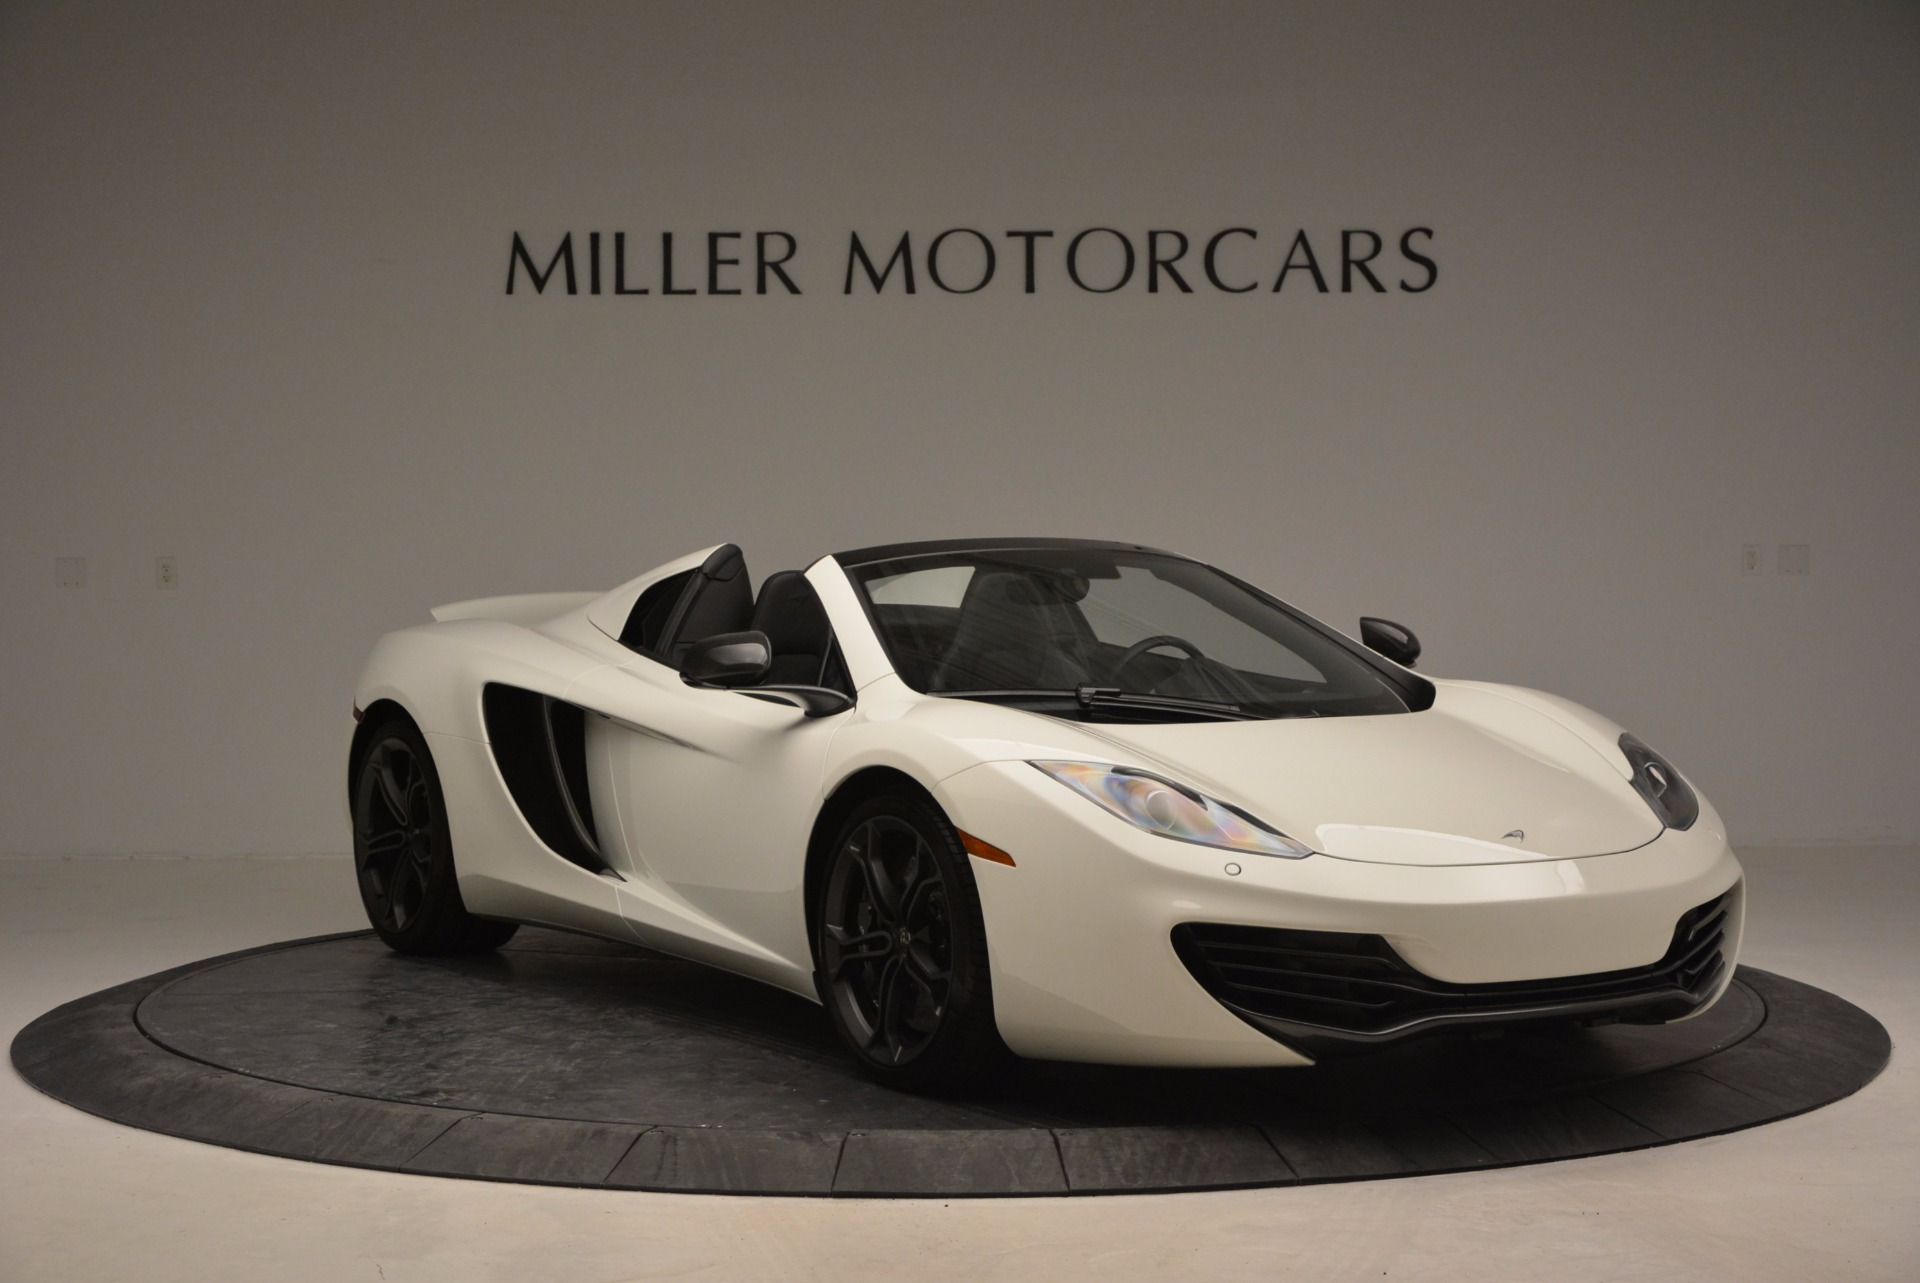 Used 2014 McLaren MP4-12C Spider For Sale In Greenwich, CT. Alfa Romeo of Greenwich, 3136 908_p11